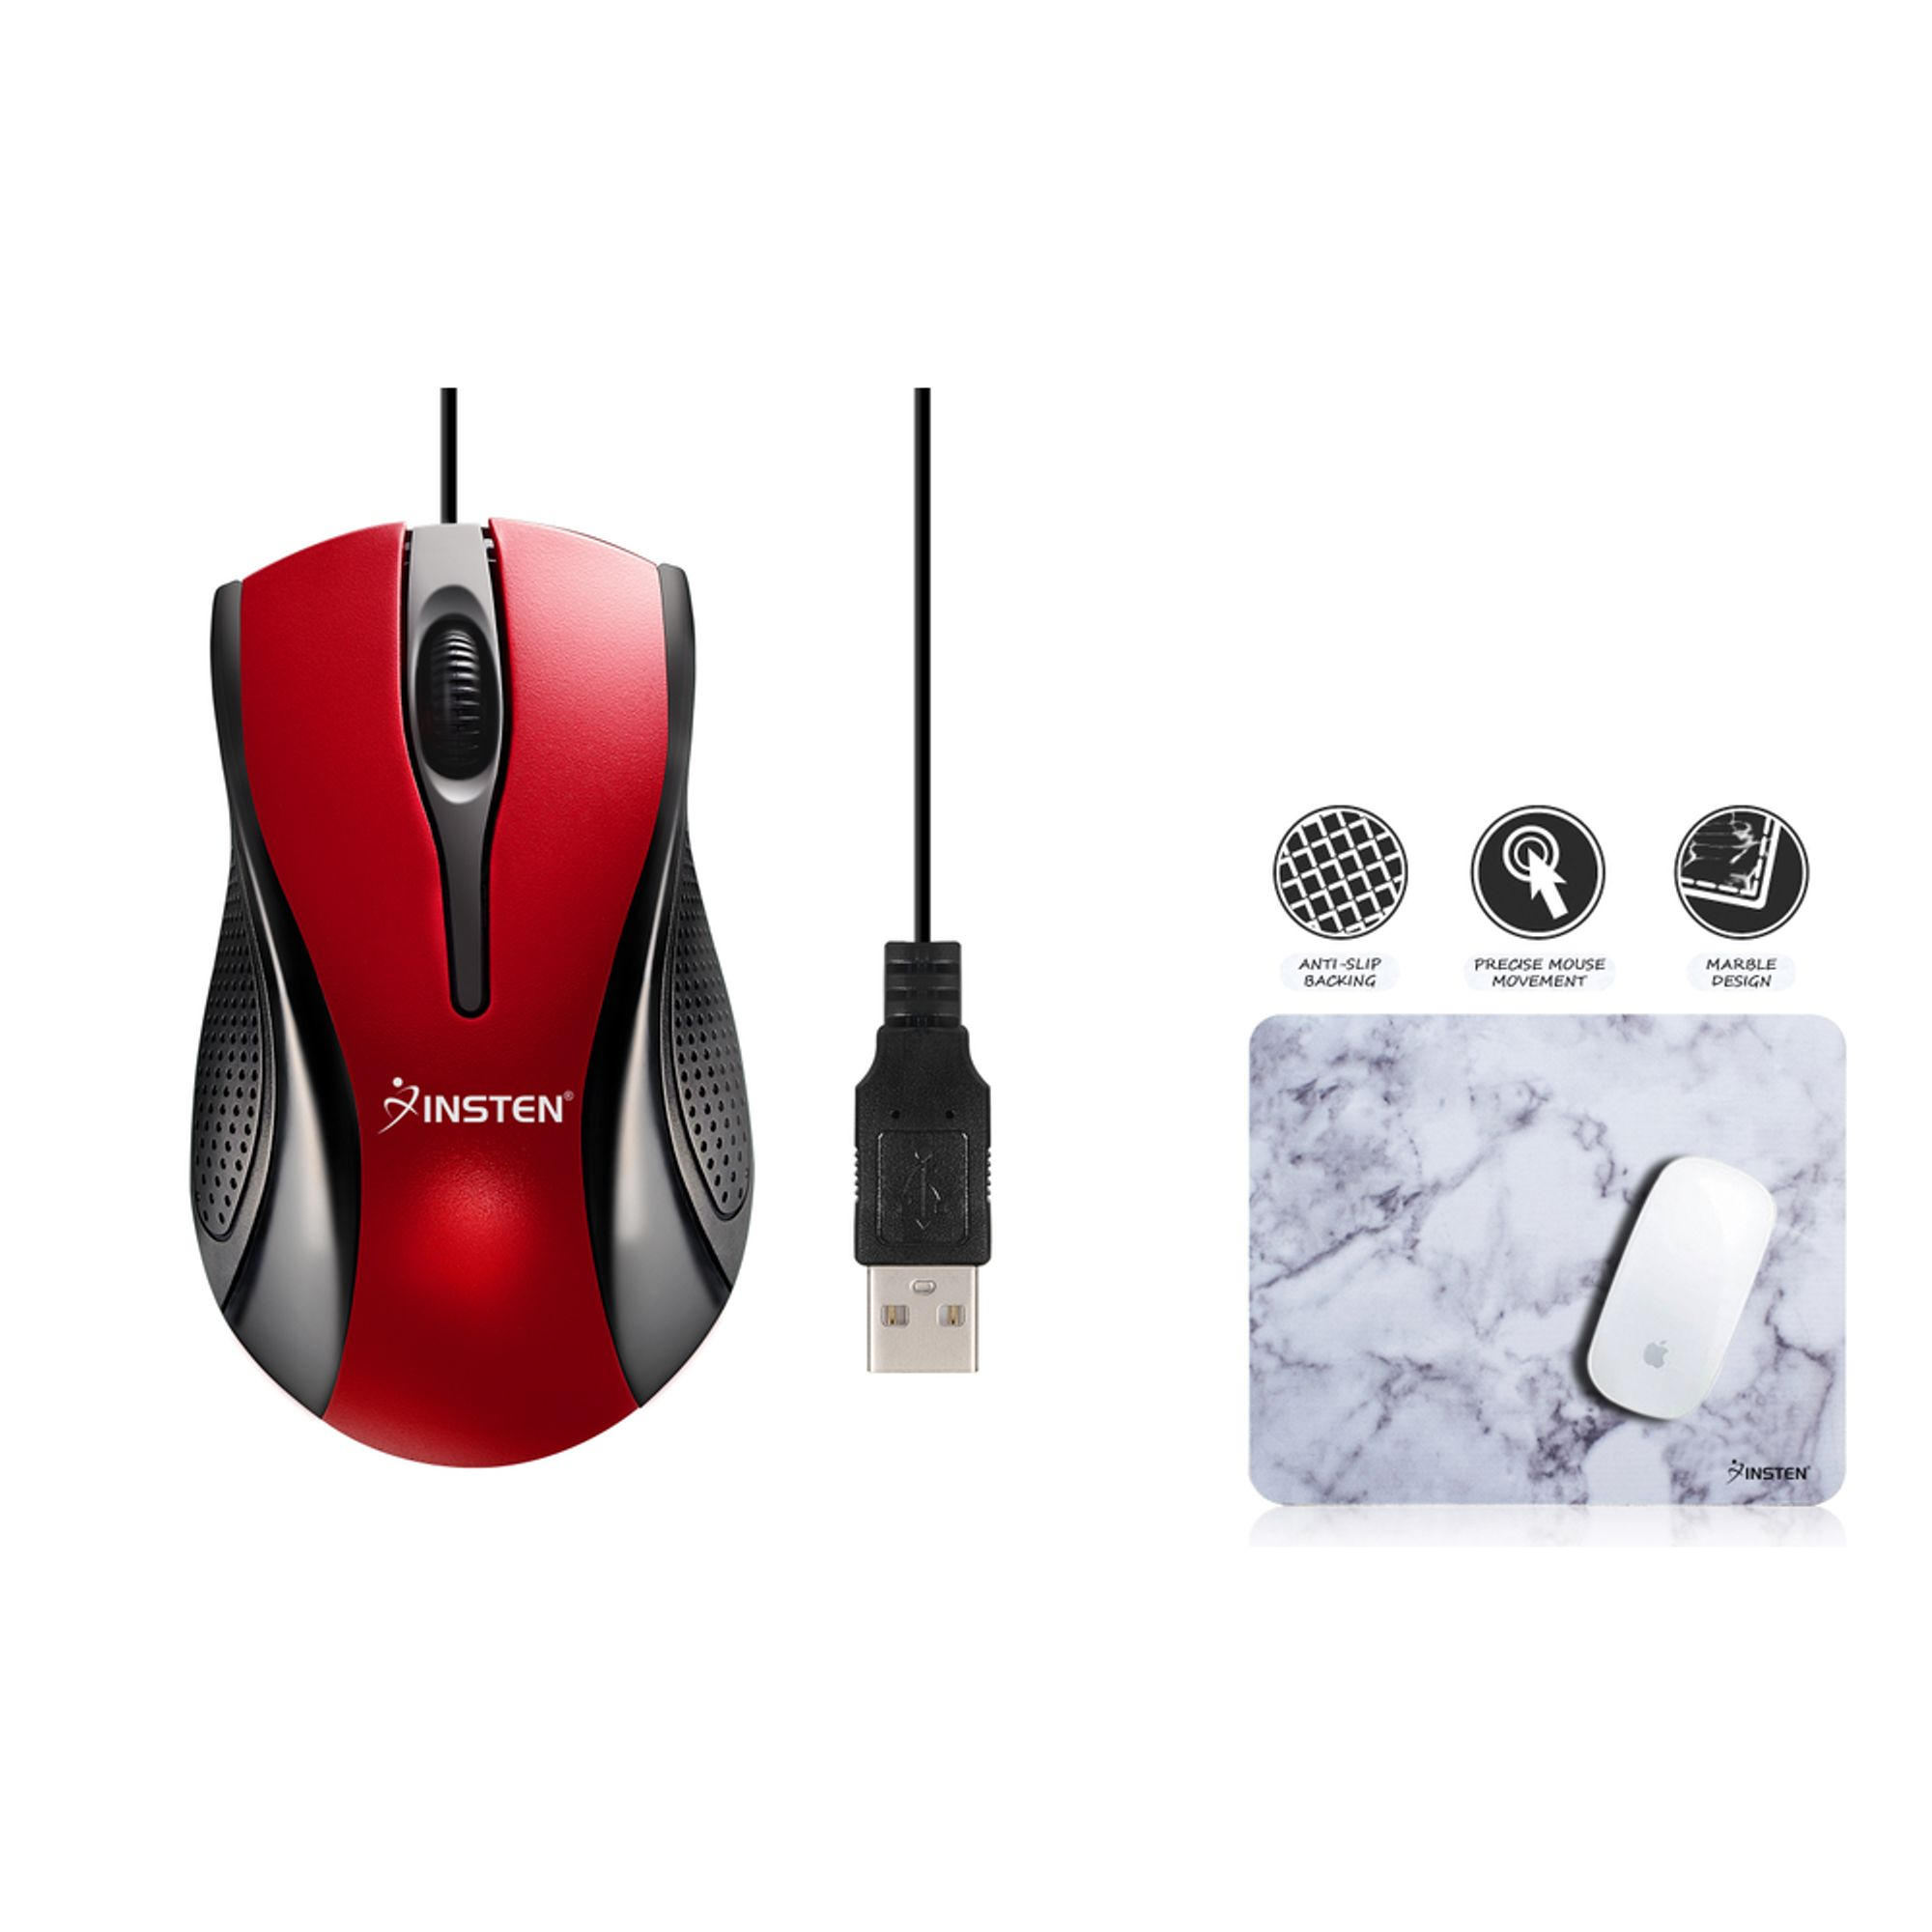 Insten Mouse for Computer Red/Black USB Optical Scroll Wheel Mouse + Computer Mouse Pad White Marble